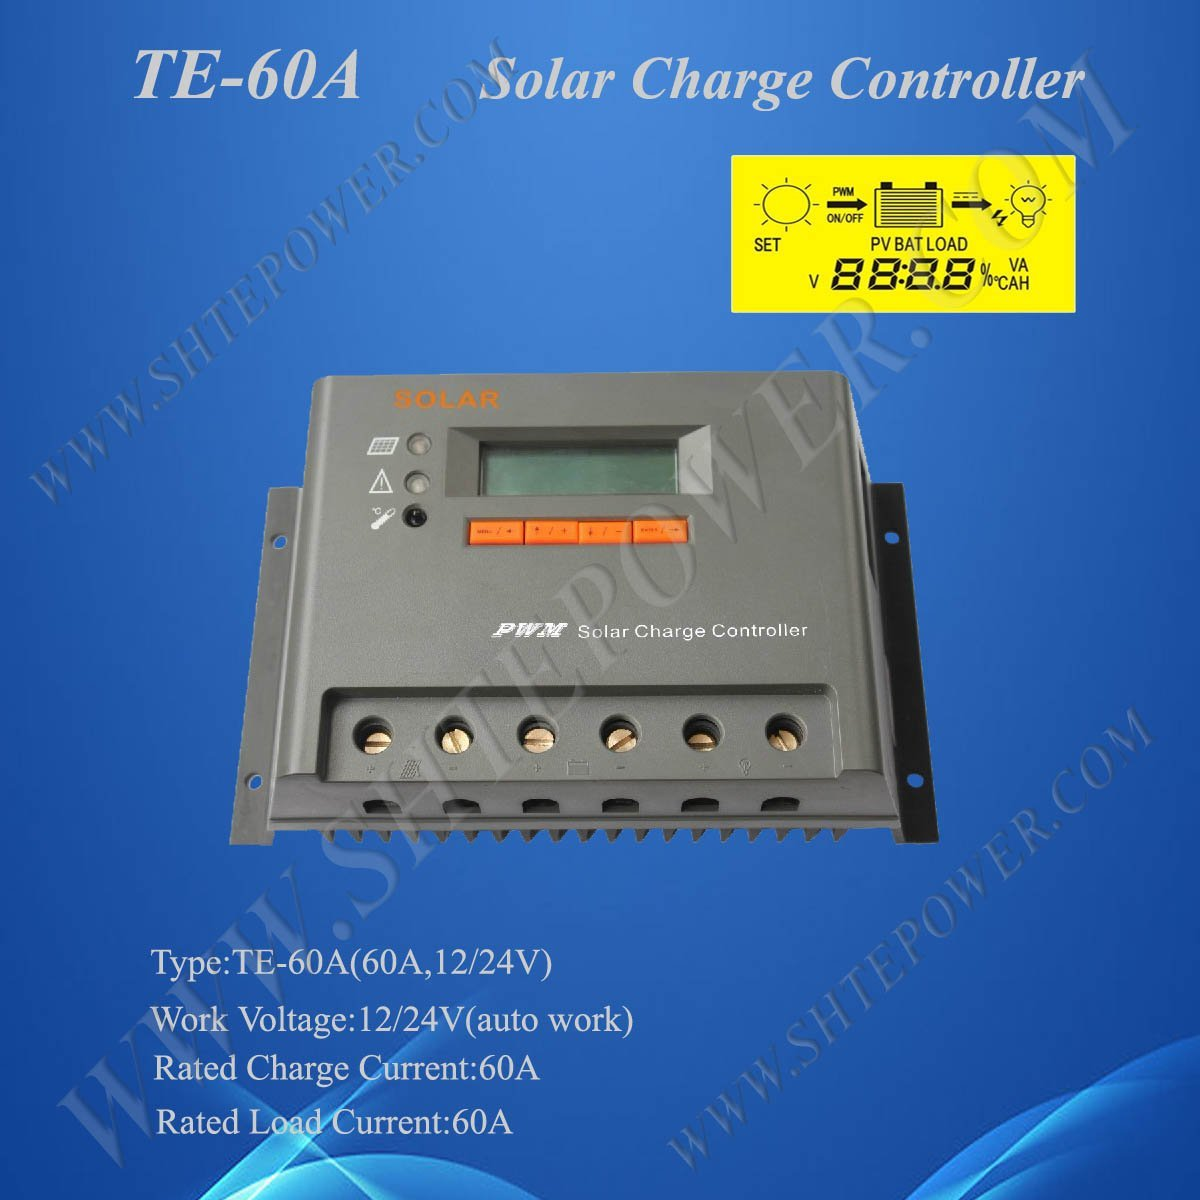 12v/24v auto work Solar Panel Voltage Regulator Controller 60A, 2 Years Warranty, CE & ROHS Approved цена